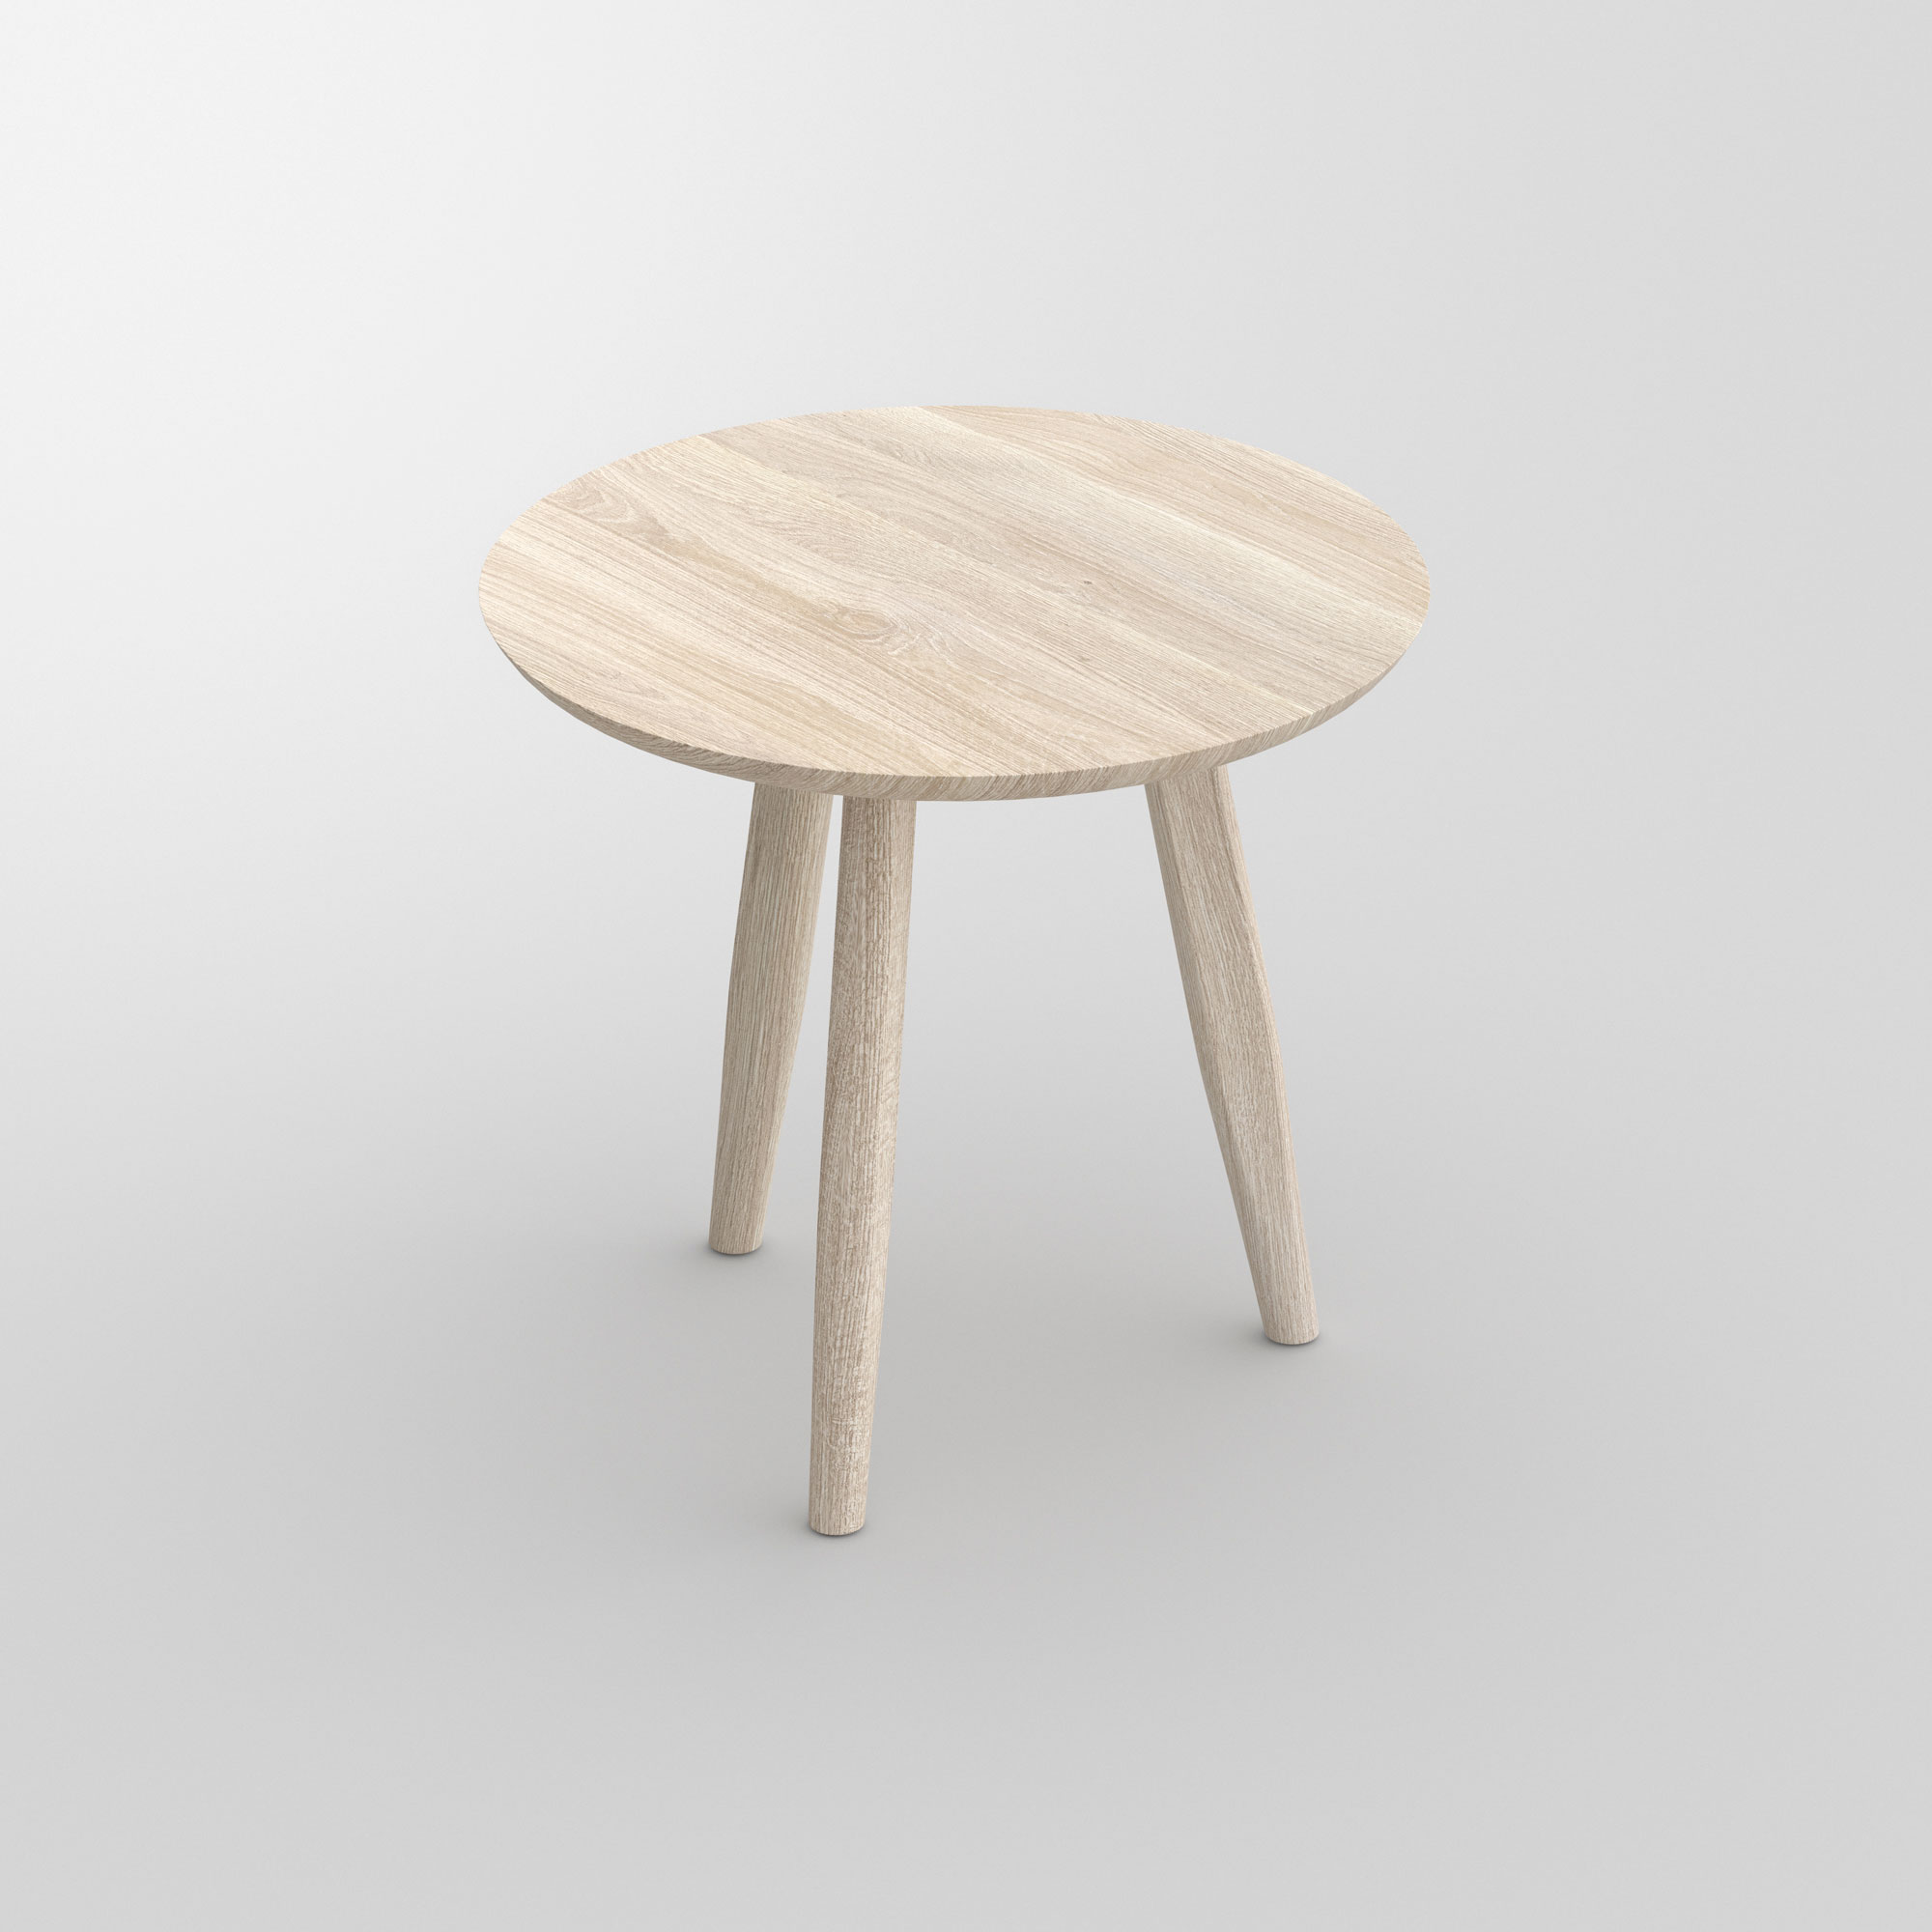 Wooden Round Coffee Table AETAS ROUND cam1 custom made in solid wood by vitamin design